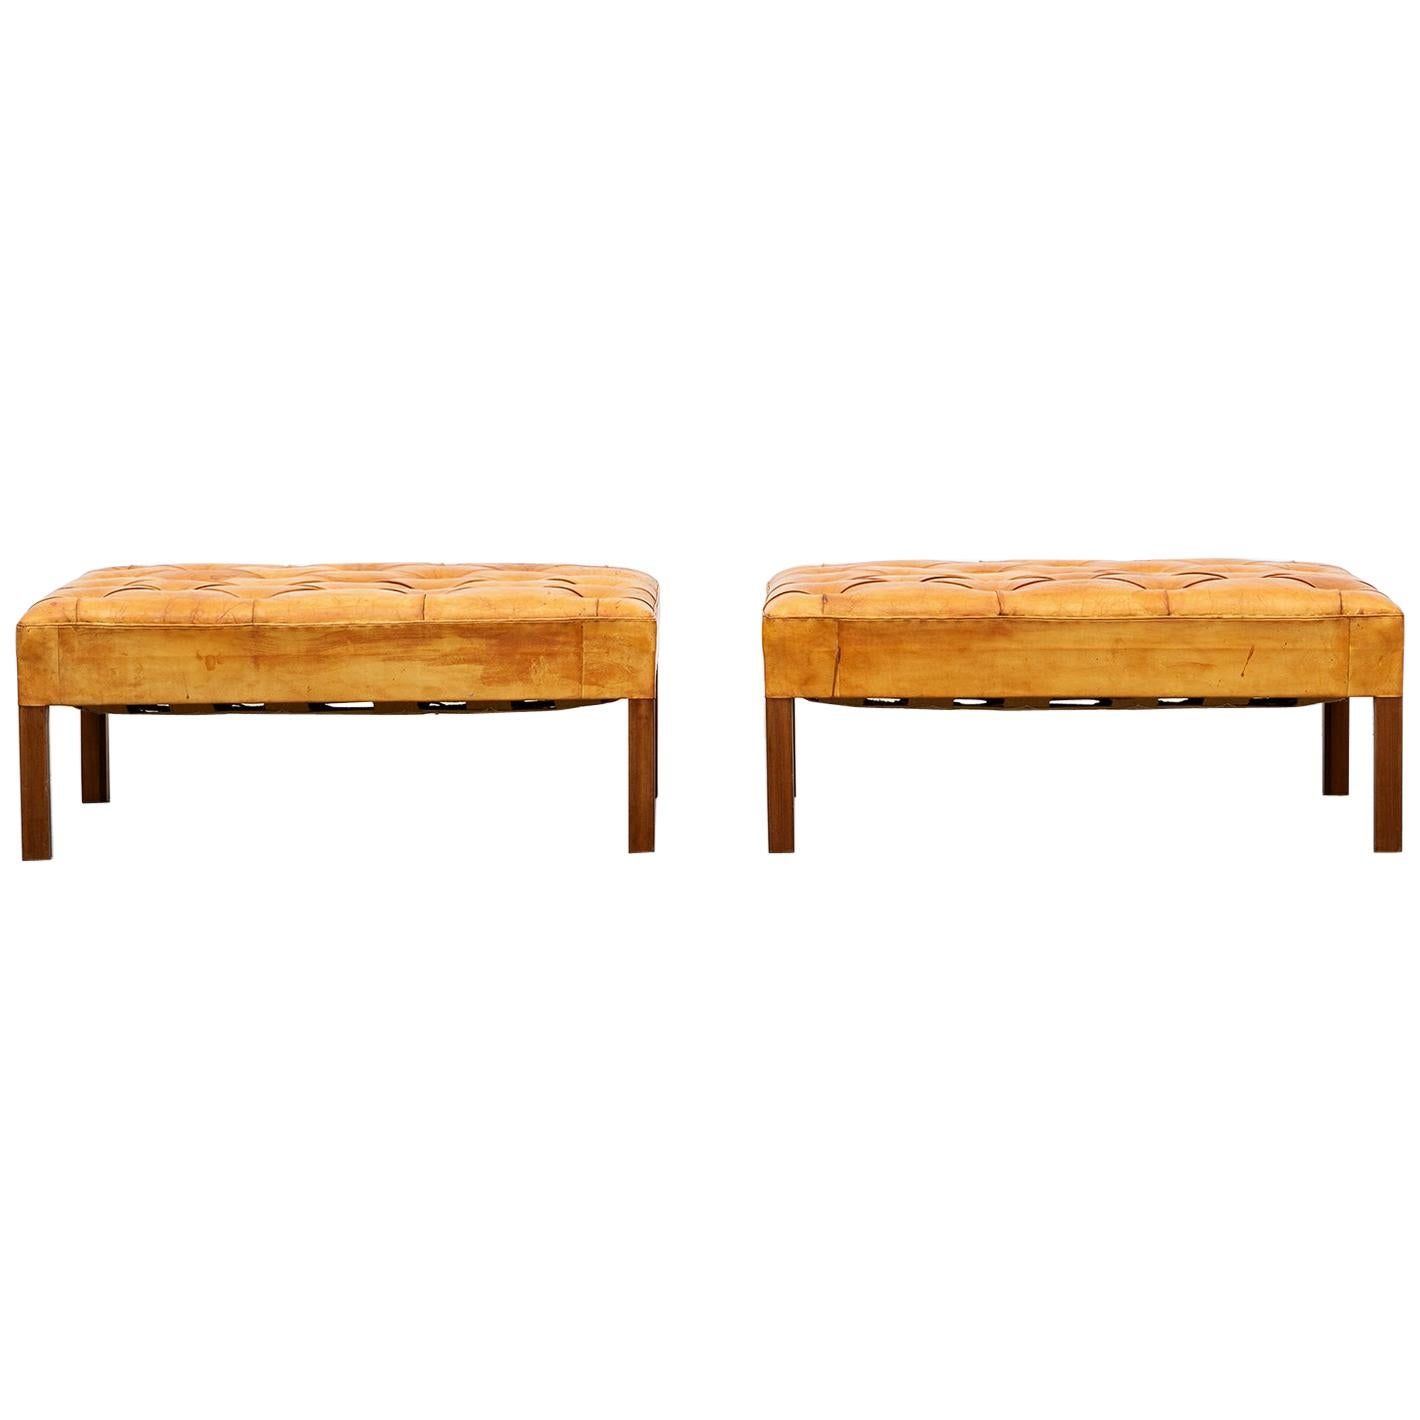 1970s Cognac Leather and Mahogany Pair of Stools by Kaare Klint